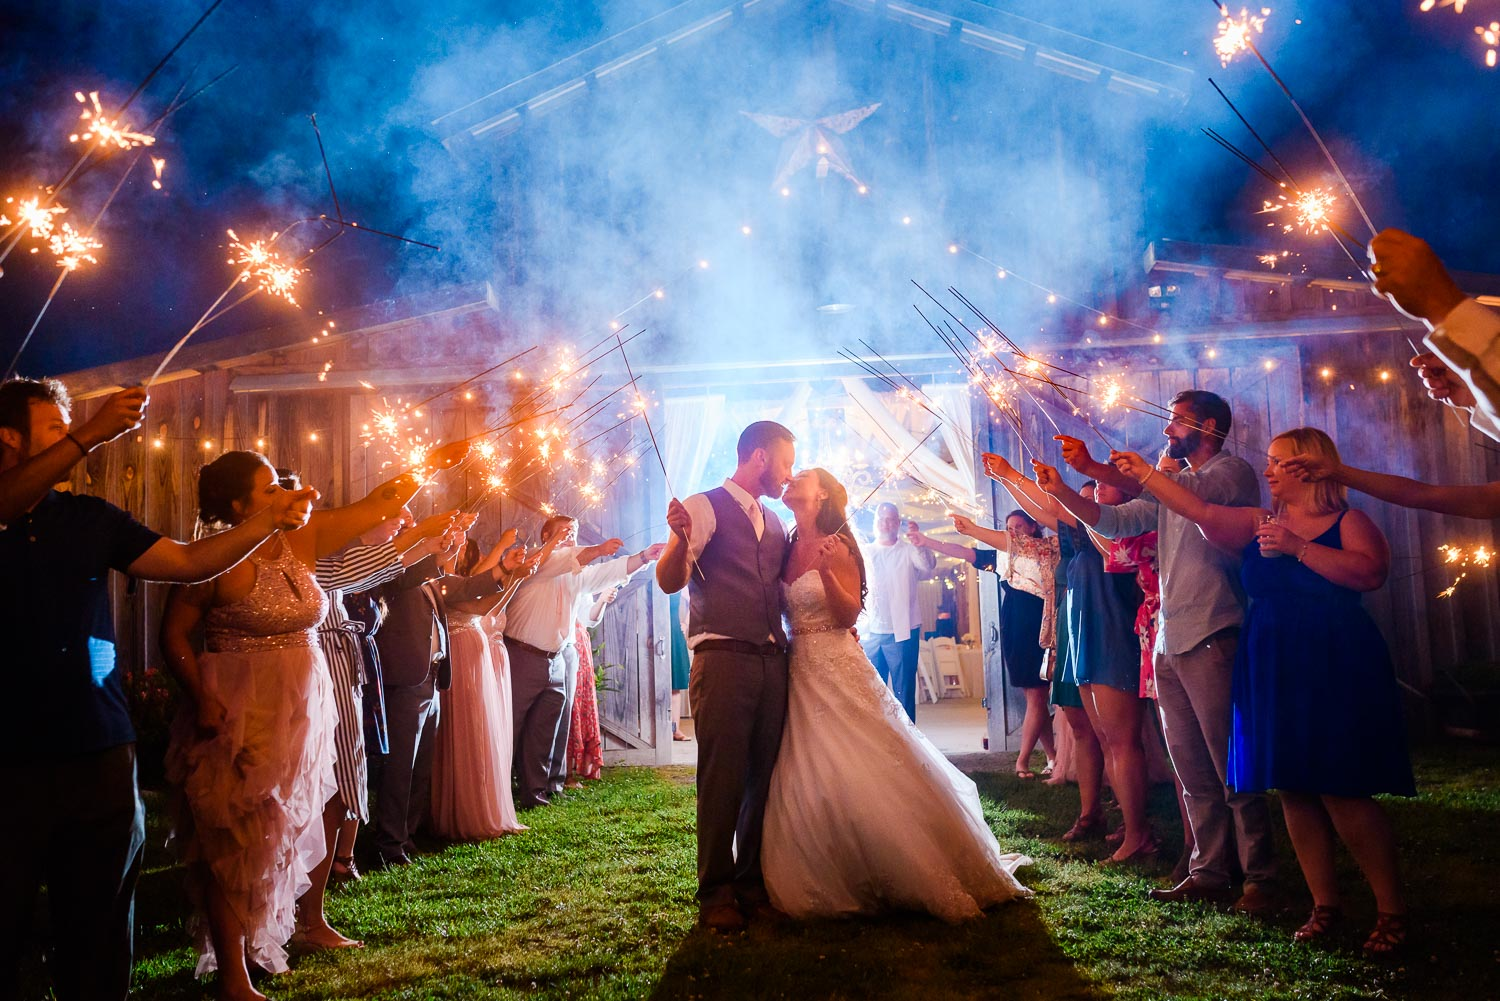 wedding sparkler exit at night in front of the barn at Drewia Hill in early May